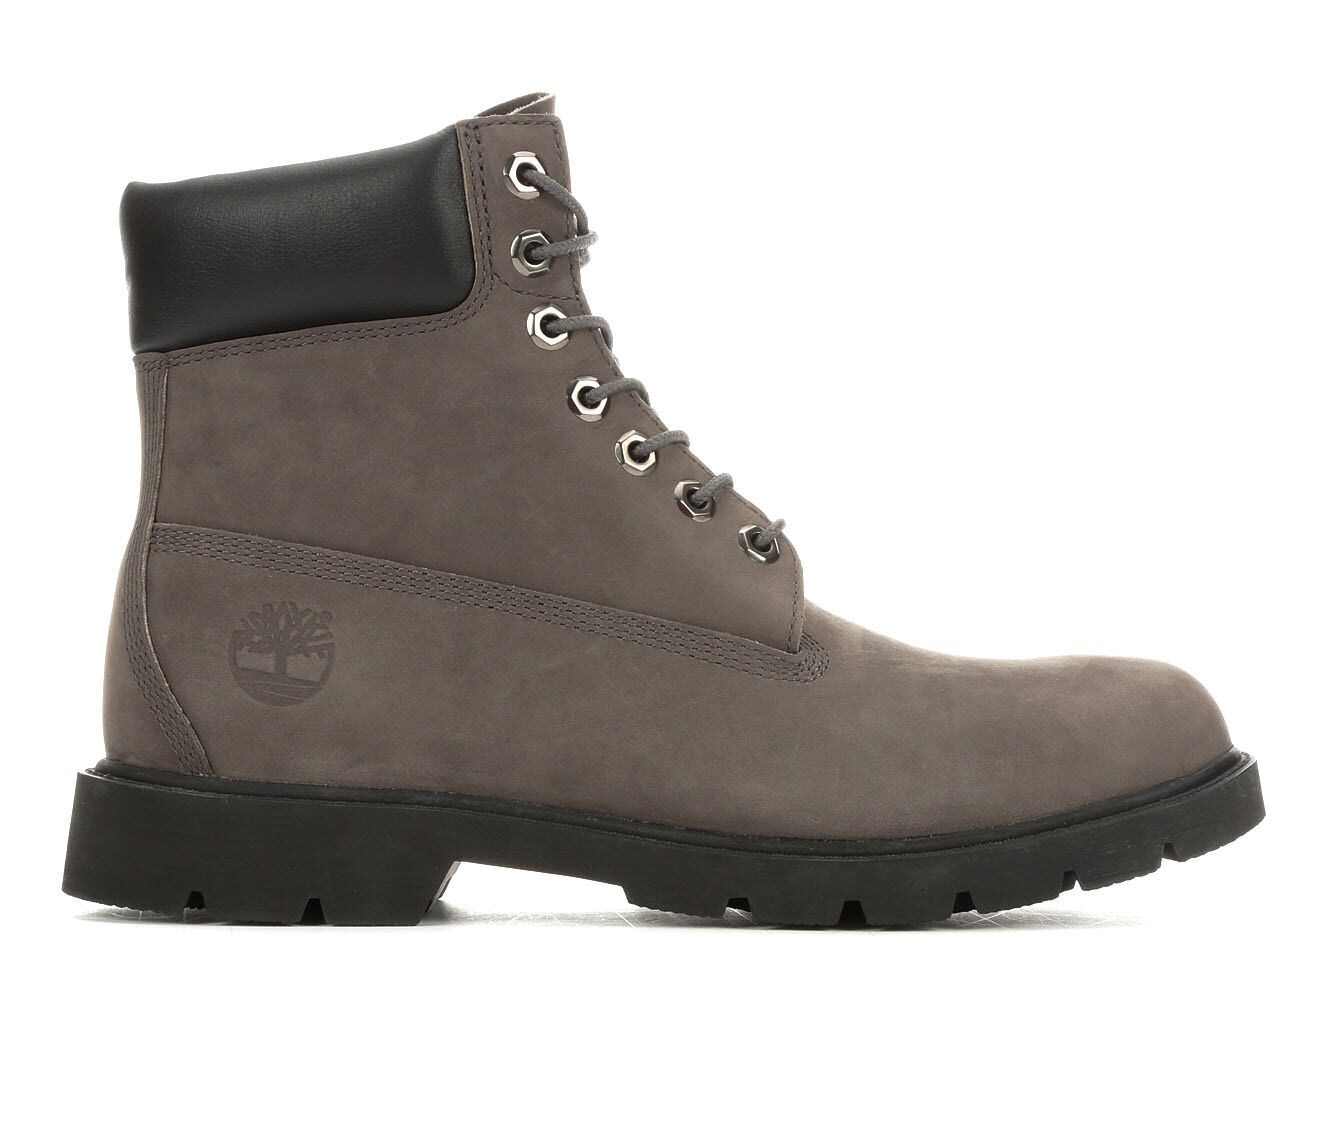 Men's Timberland 6 Inch Padded Collar Boots Grey